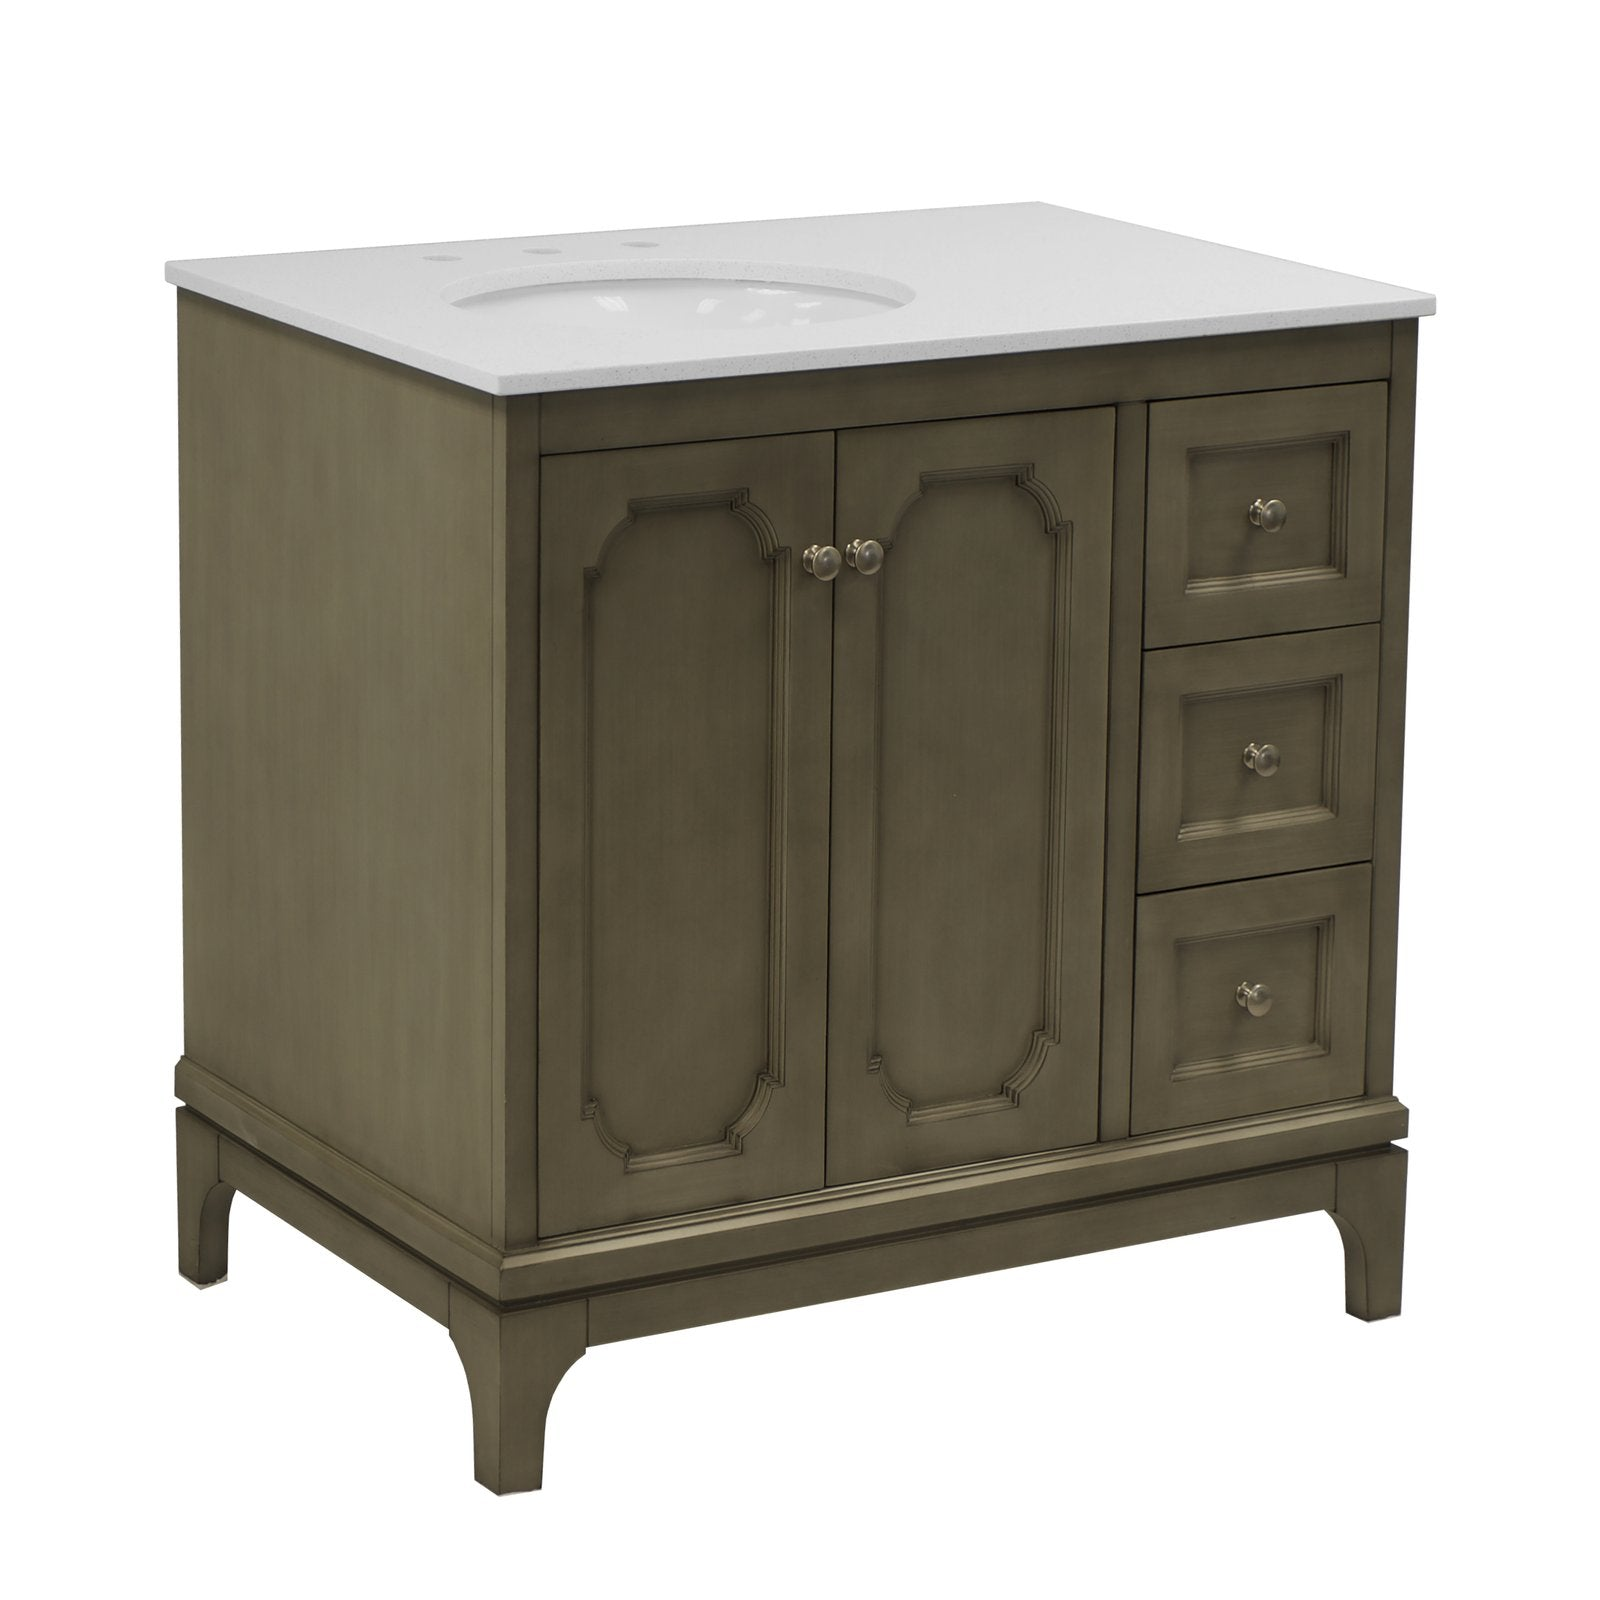 Starboard 36-inch Bathroom Vanity with Quartz Top ...